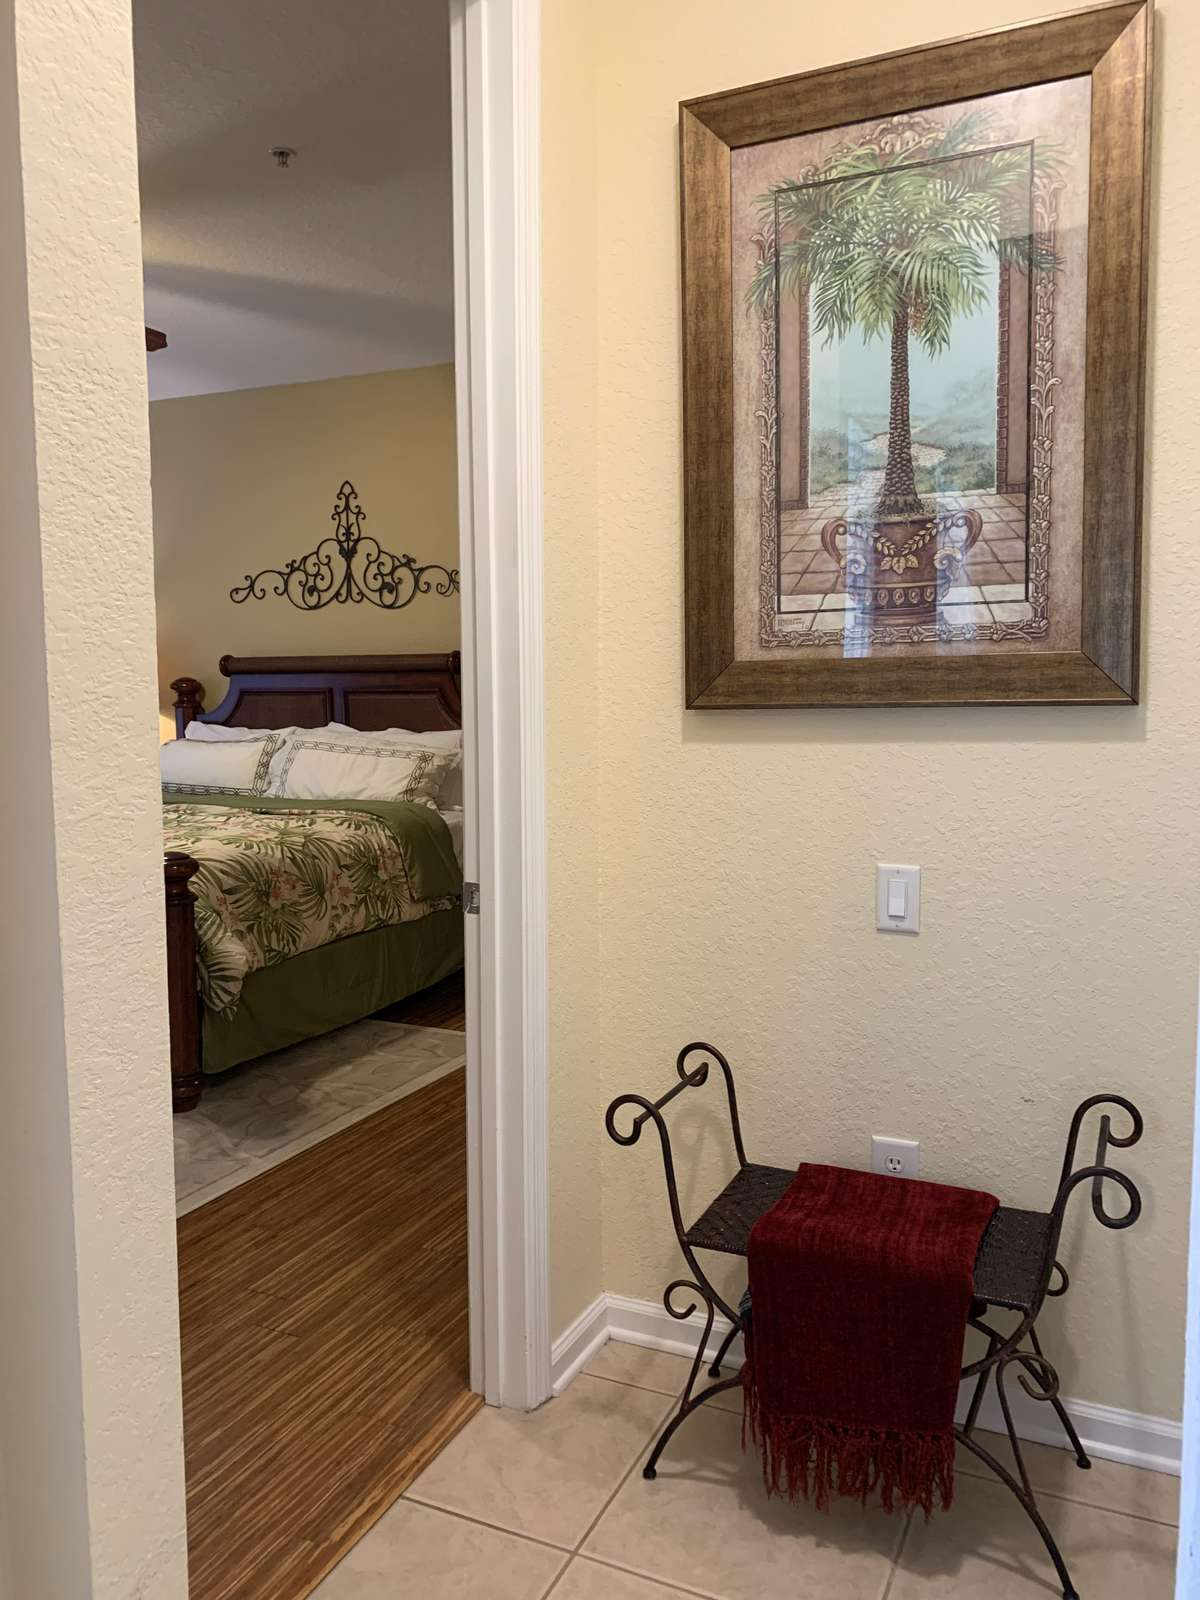 Entrance to the master bedroom